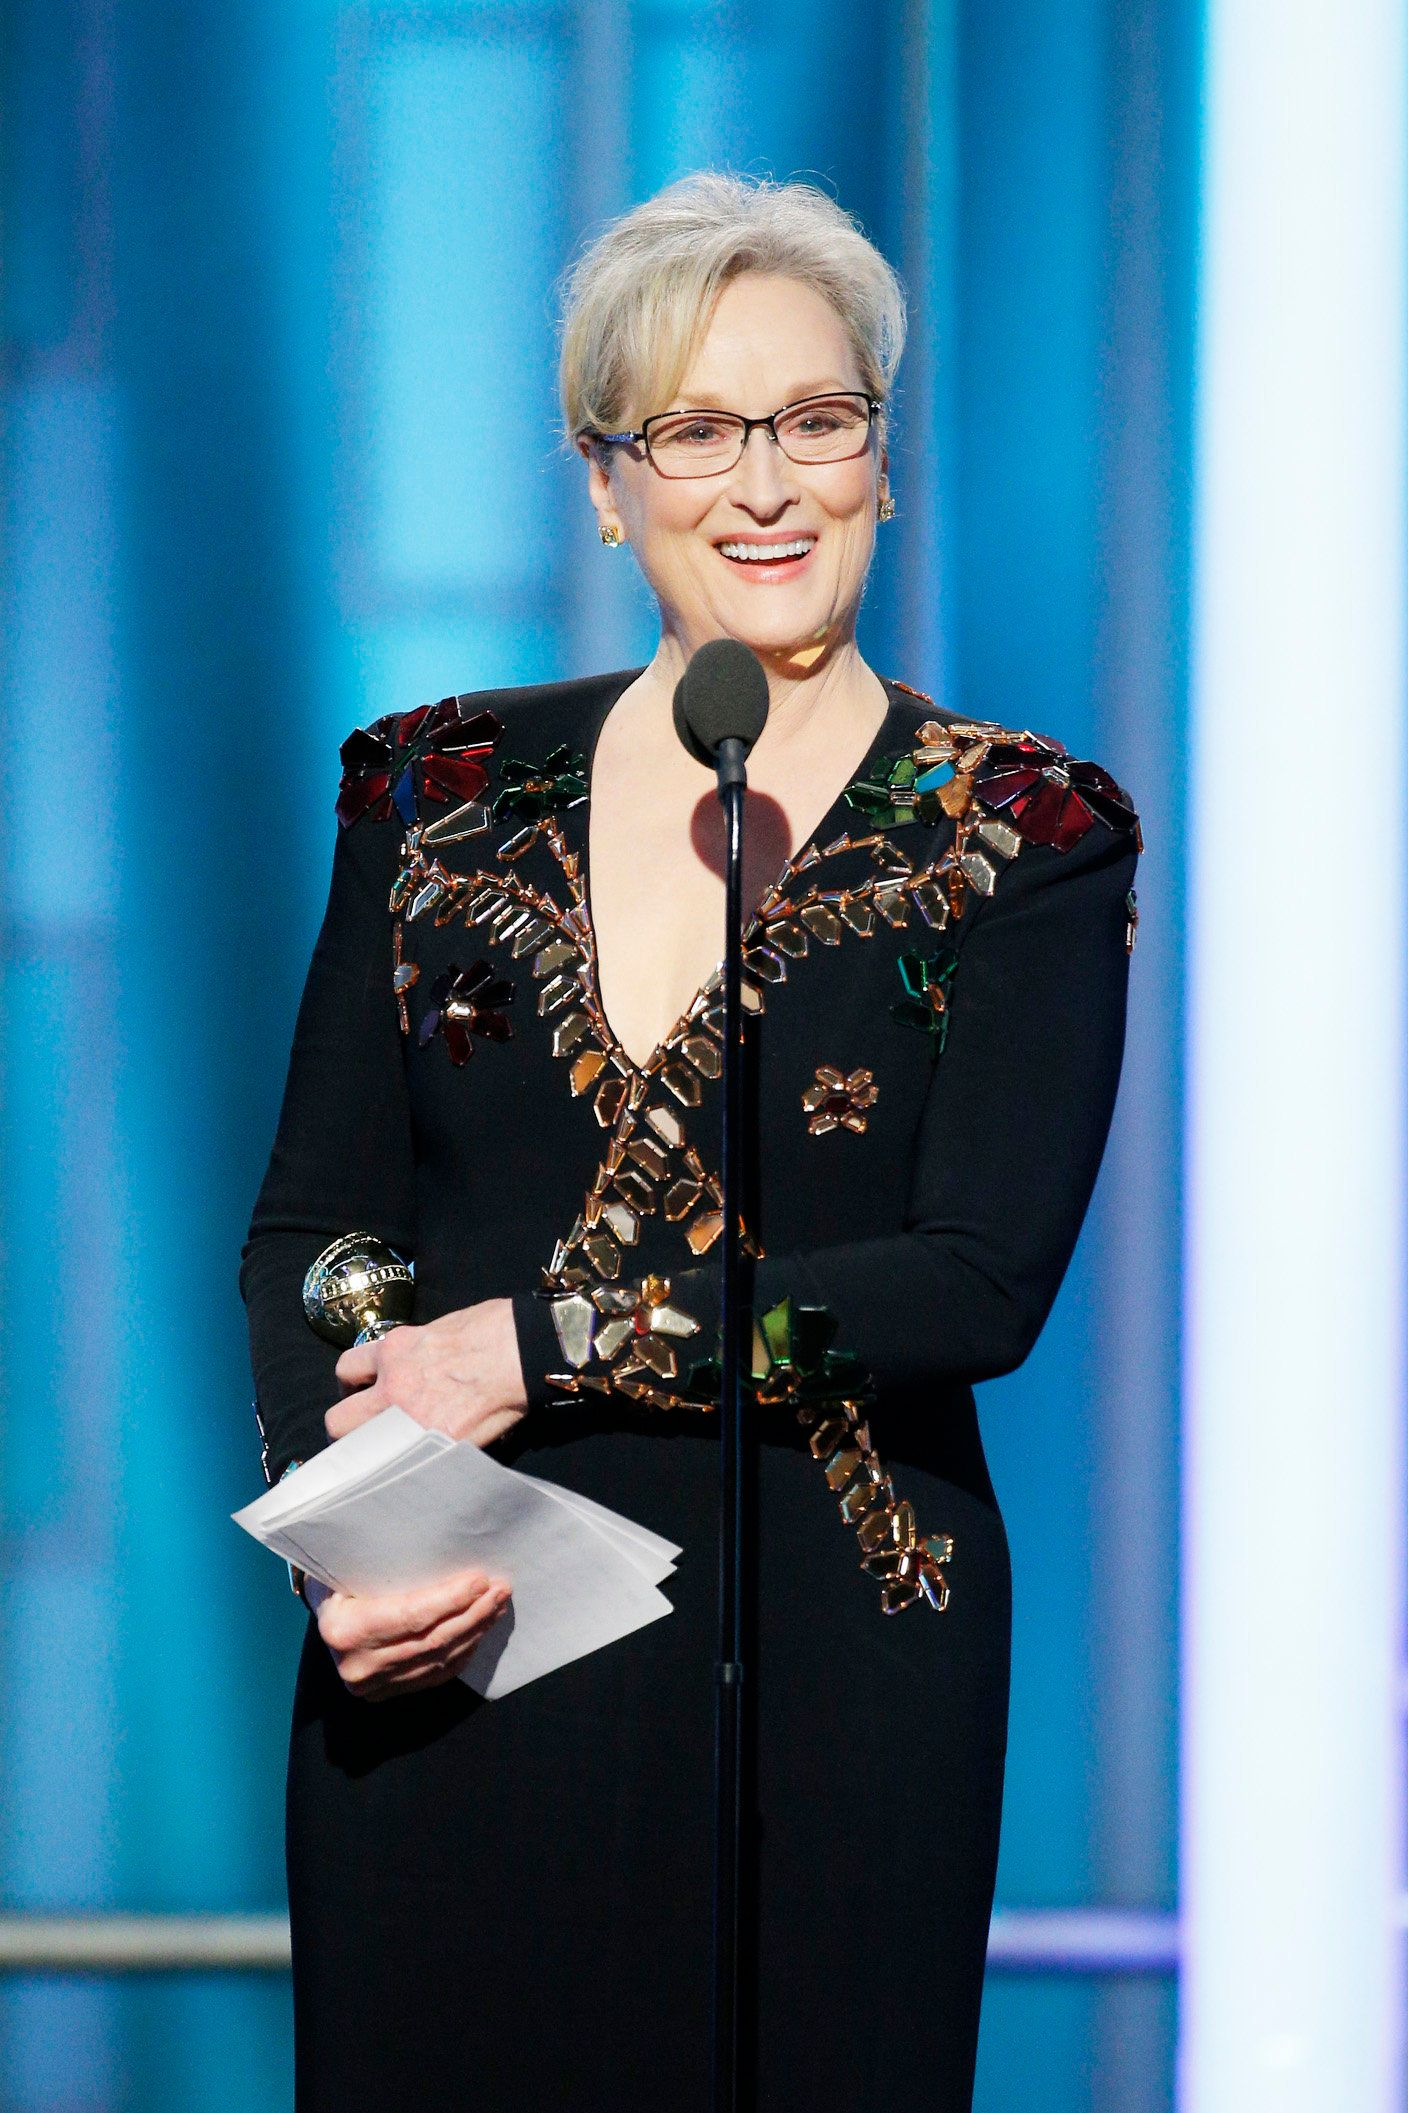 Meryl Streep wins the Cecil B. DeMille award and slays with the perfect speech.